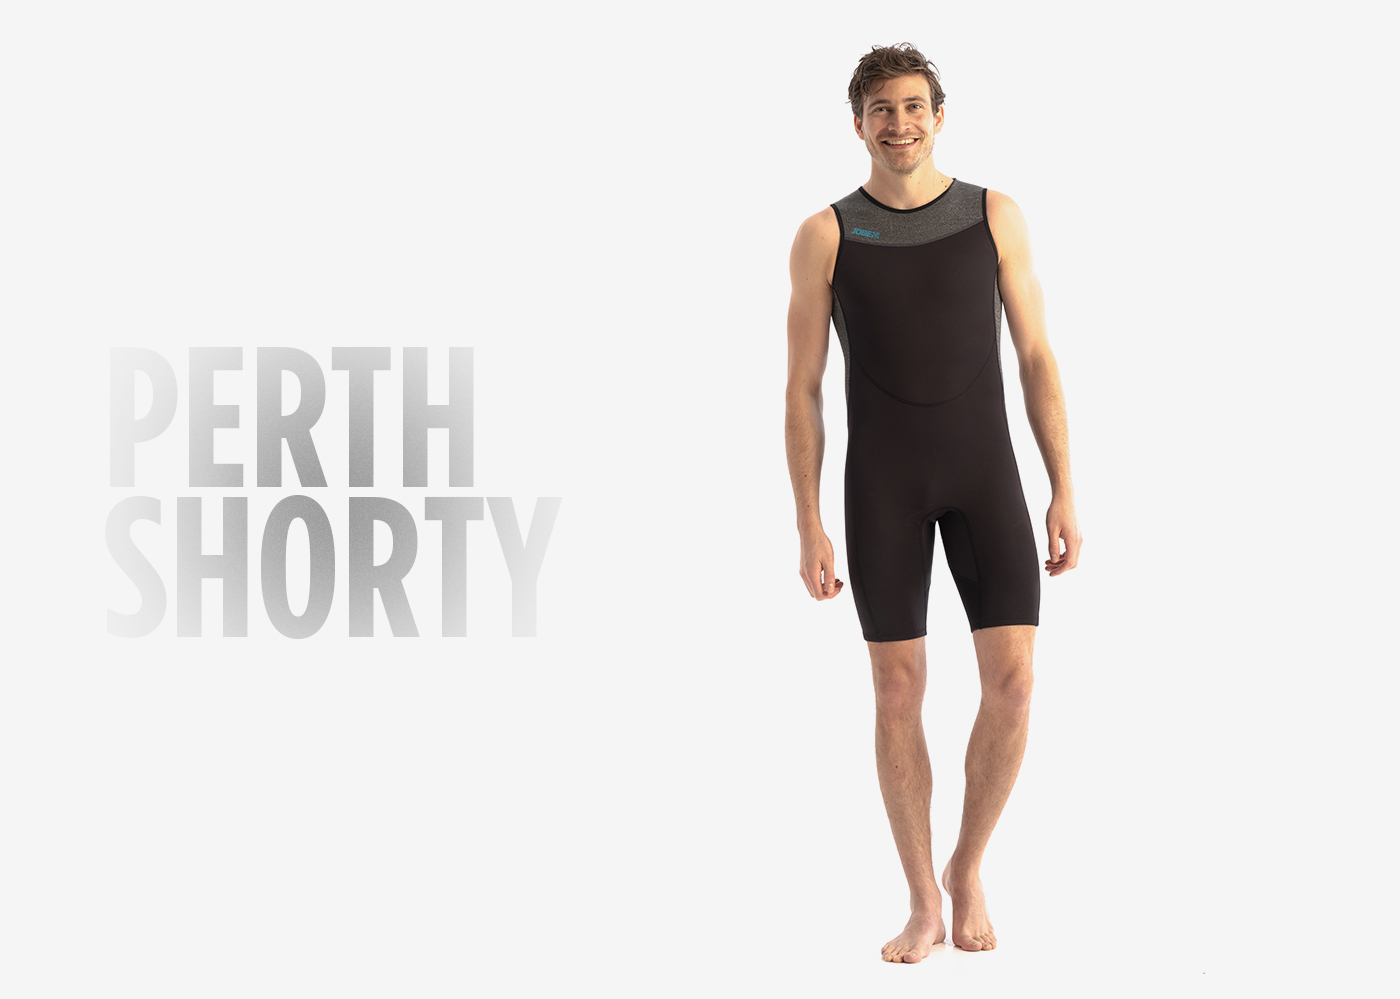 Jobe Perth Shorty Series